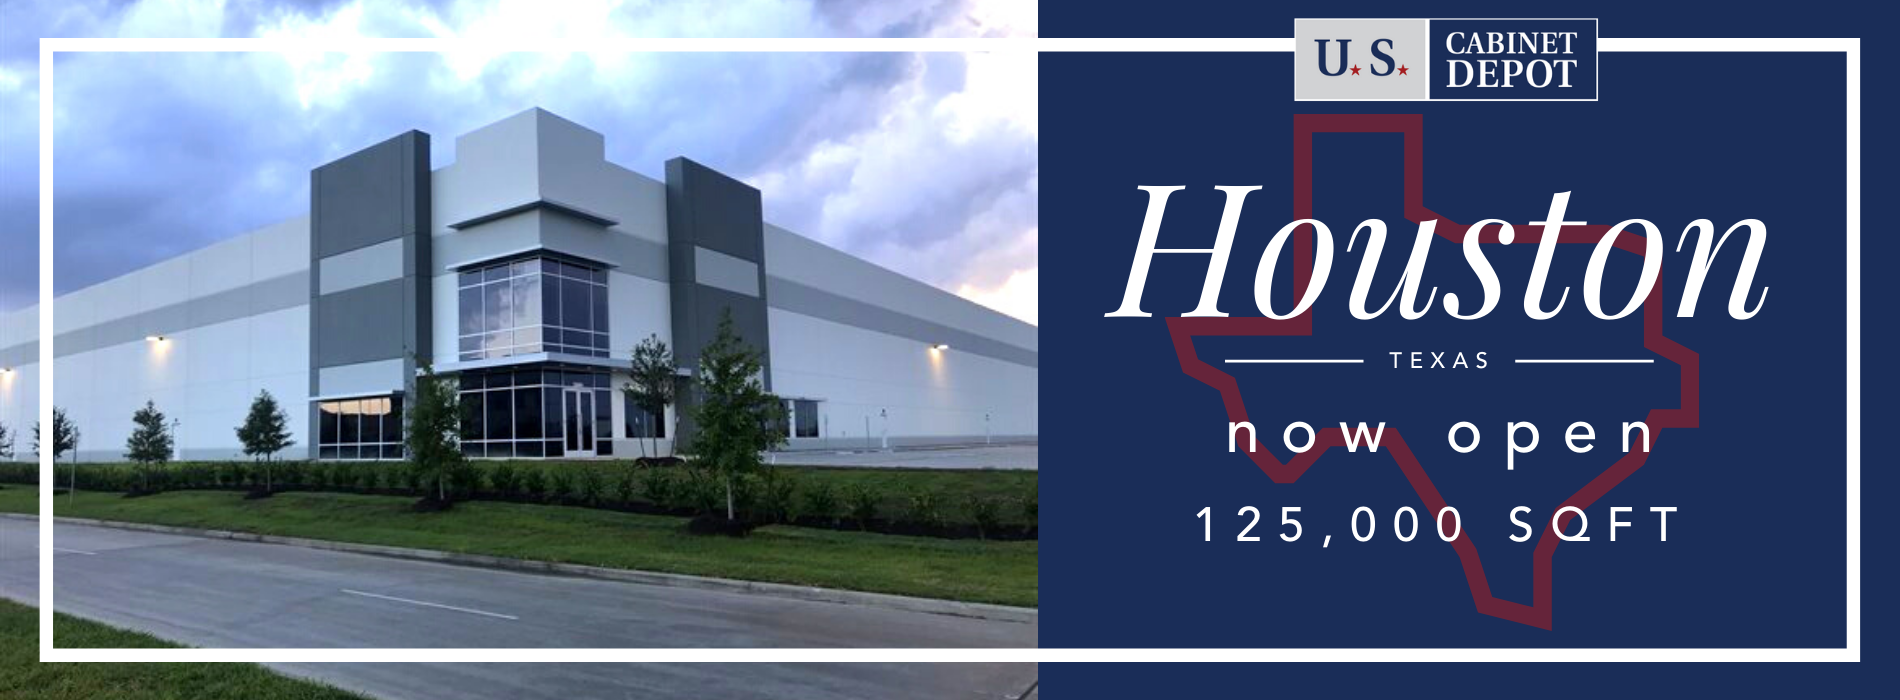 New Location For Warehouse Pick Up at Houston